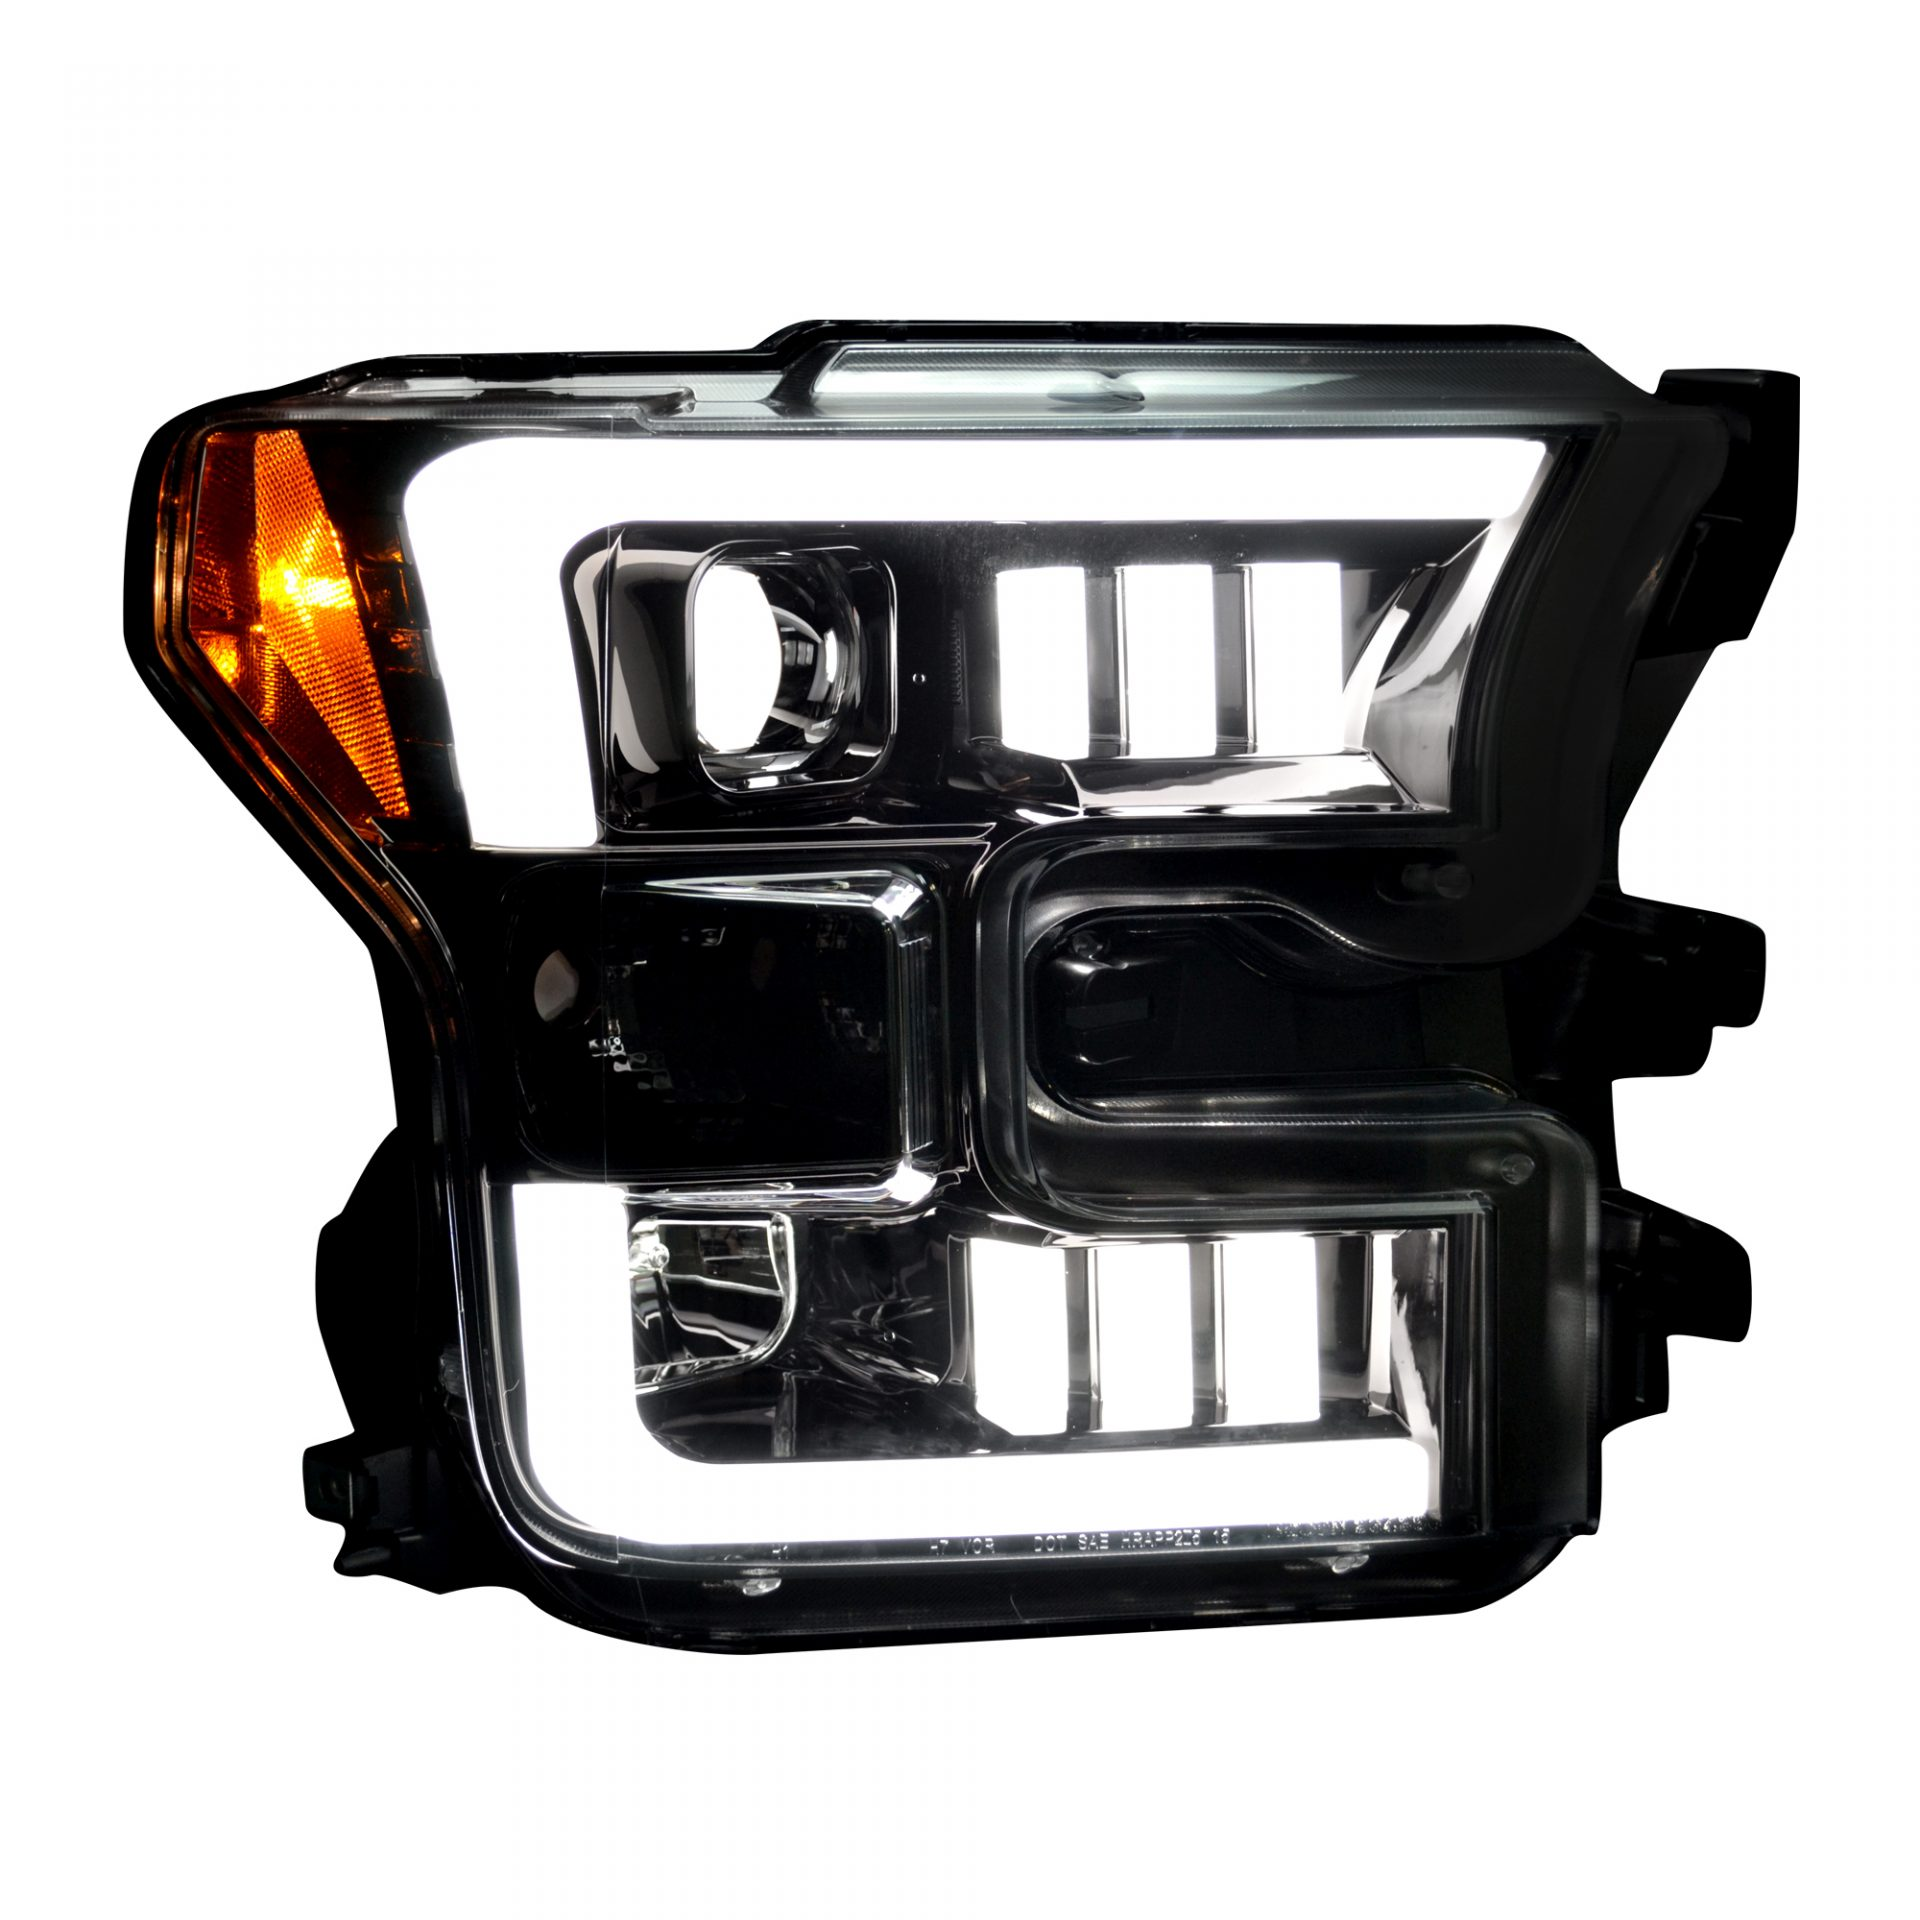 Ford F150 Projector Headlights Truck & Car Parts BKC